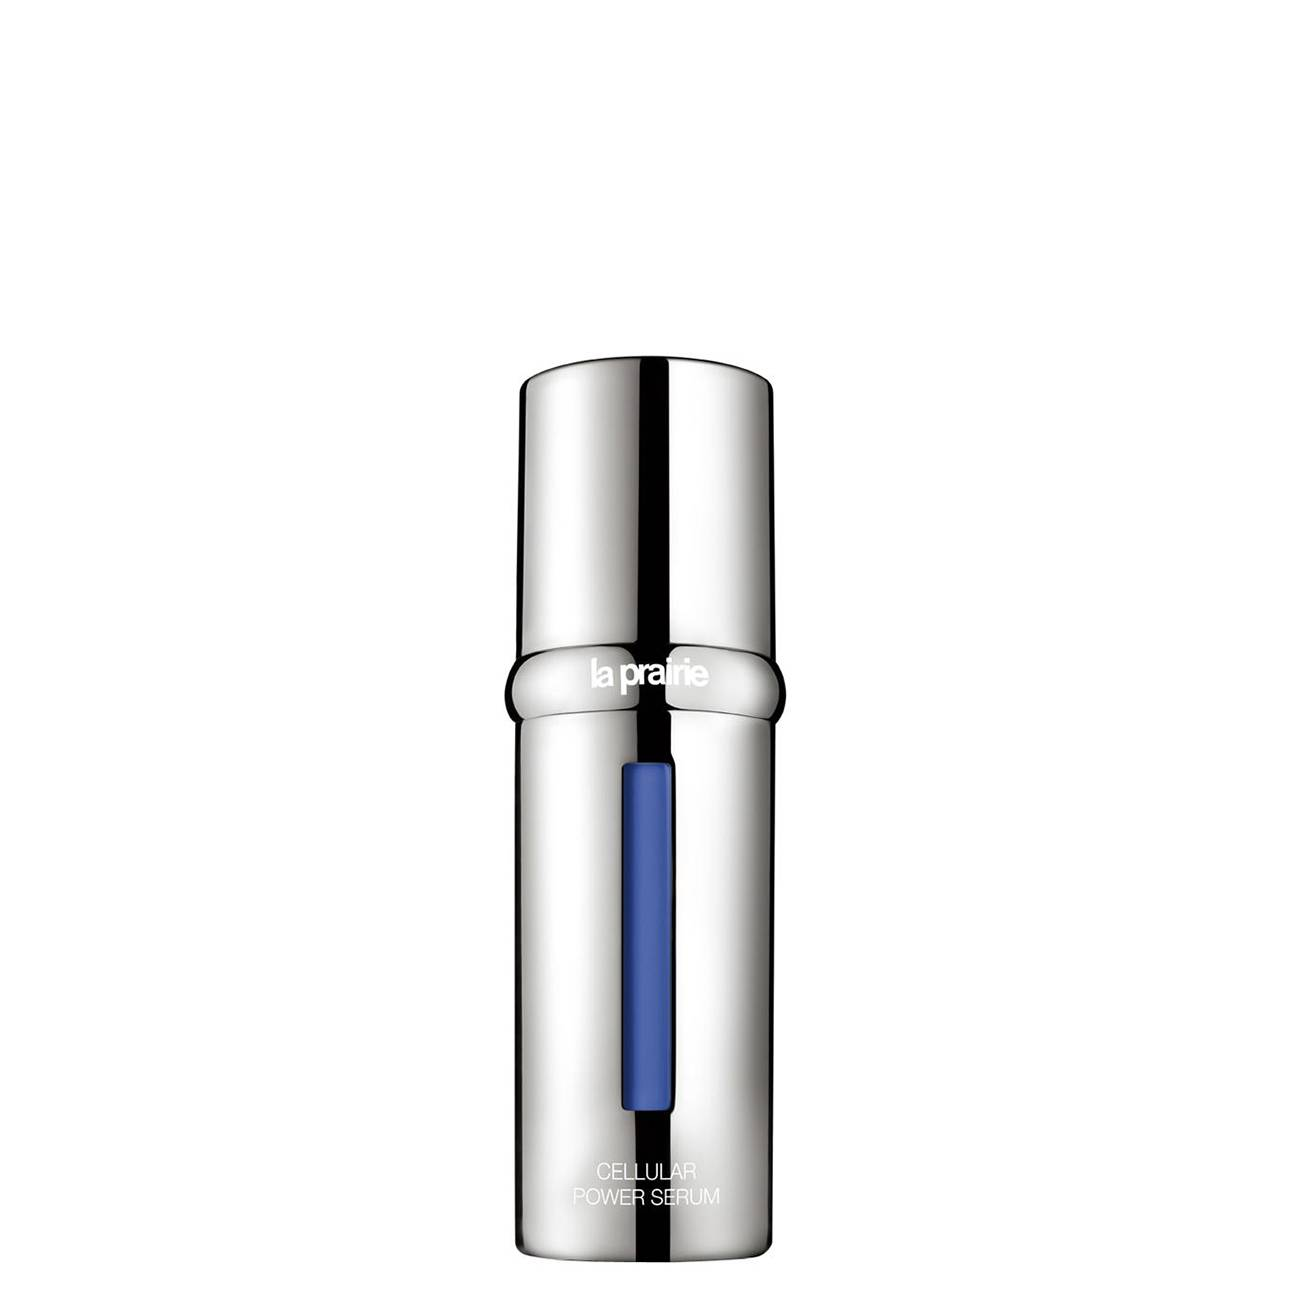 Cellular Power Serum 50 Ml La Prairie imagine 2021 bestvalue.eu